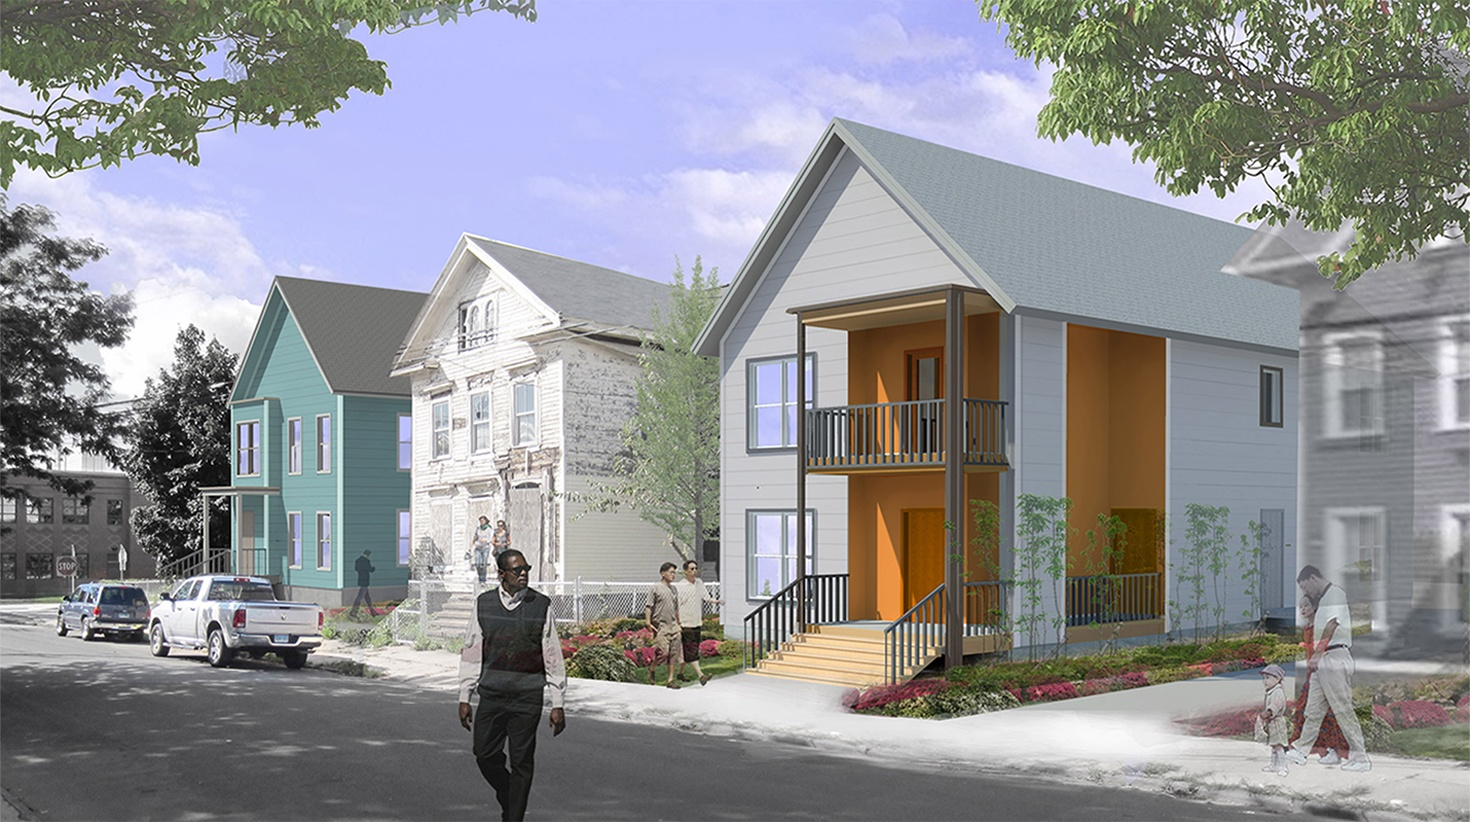 Two-family-homes - Modern Urban Infill in a Historical Neighborhood